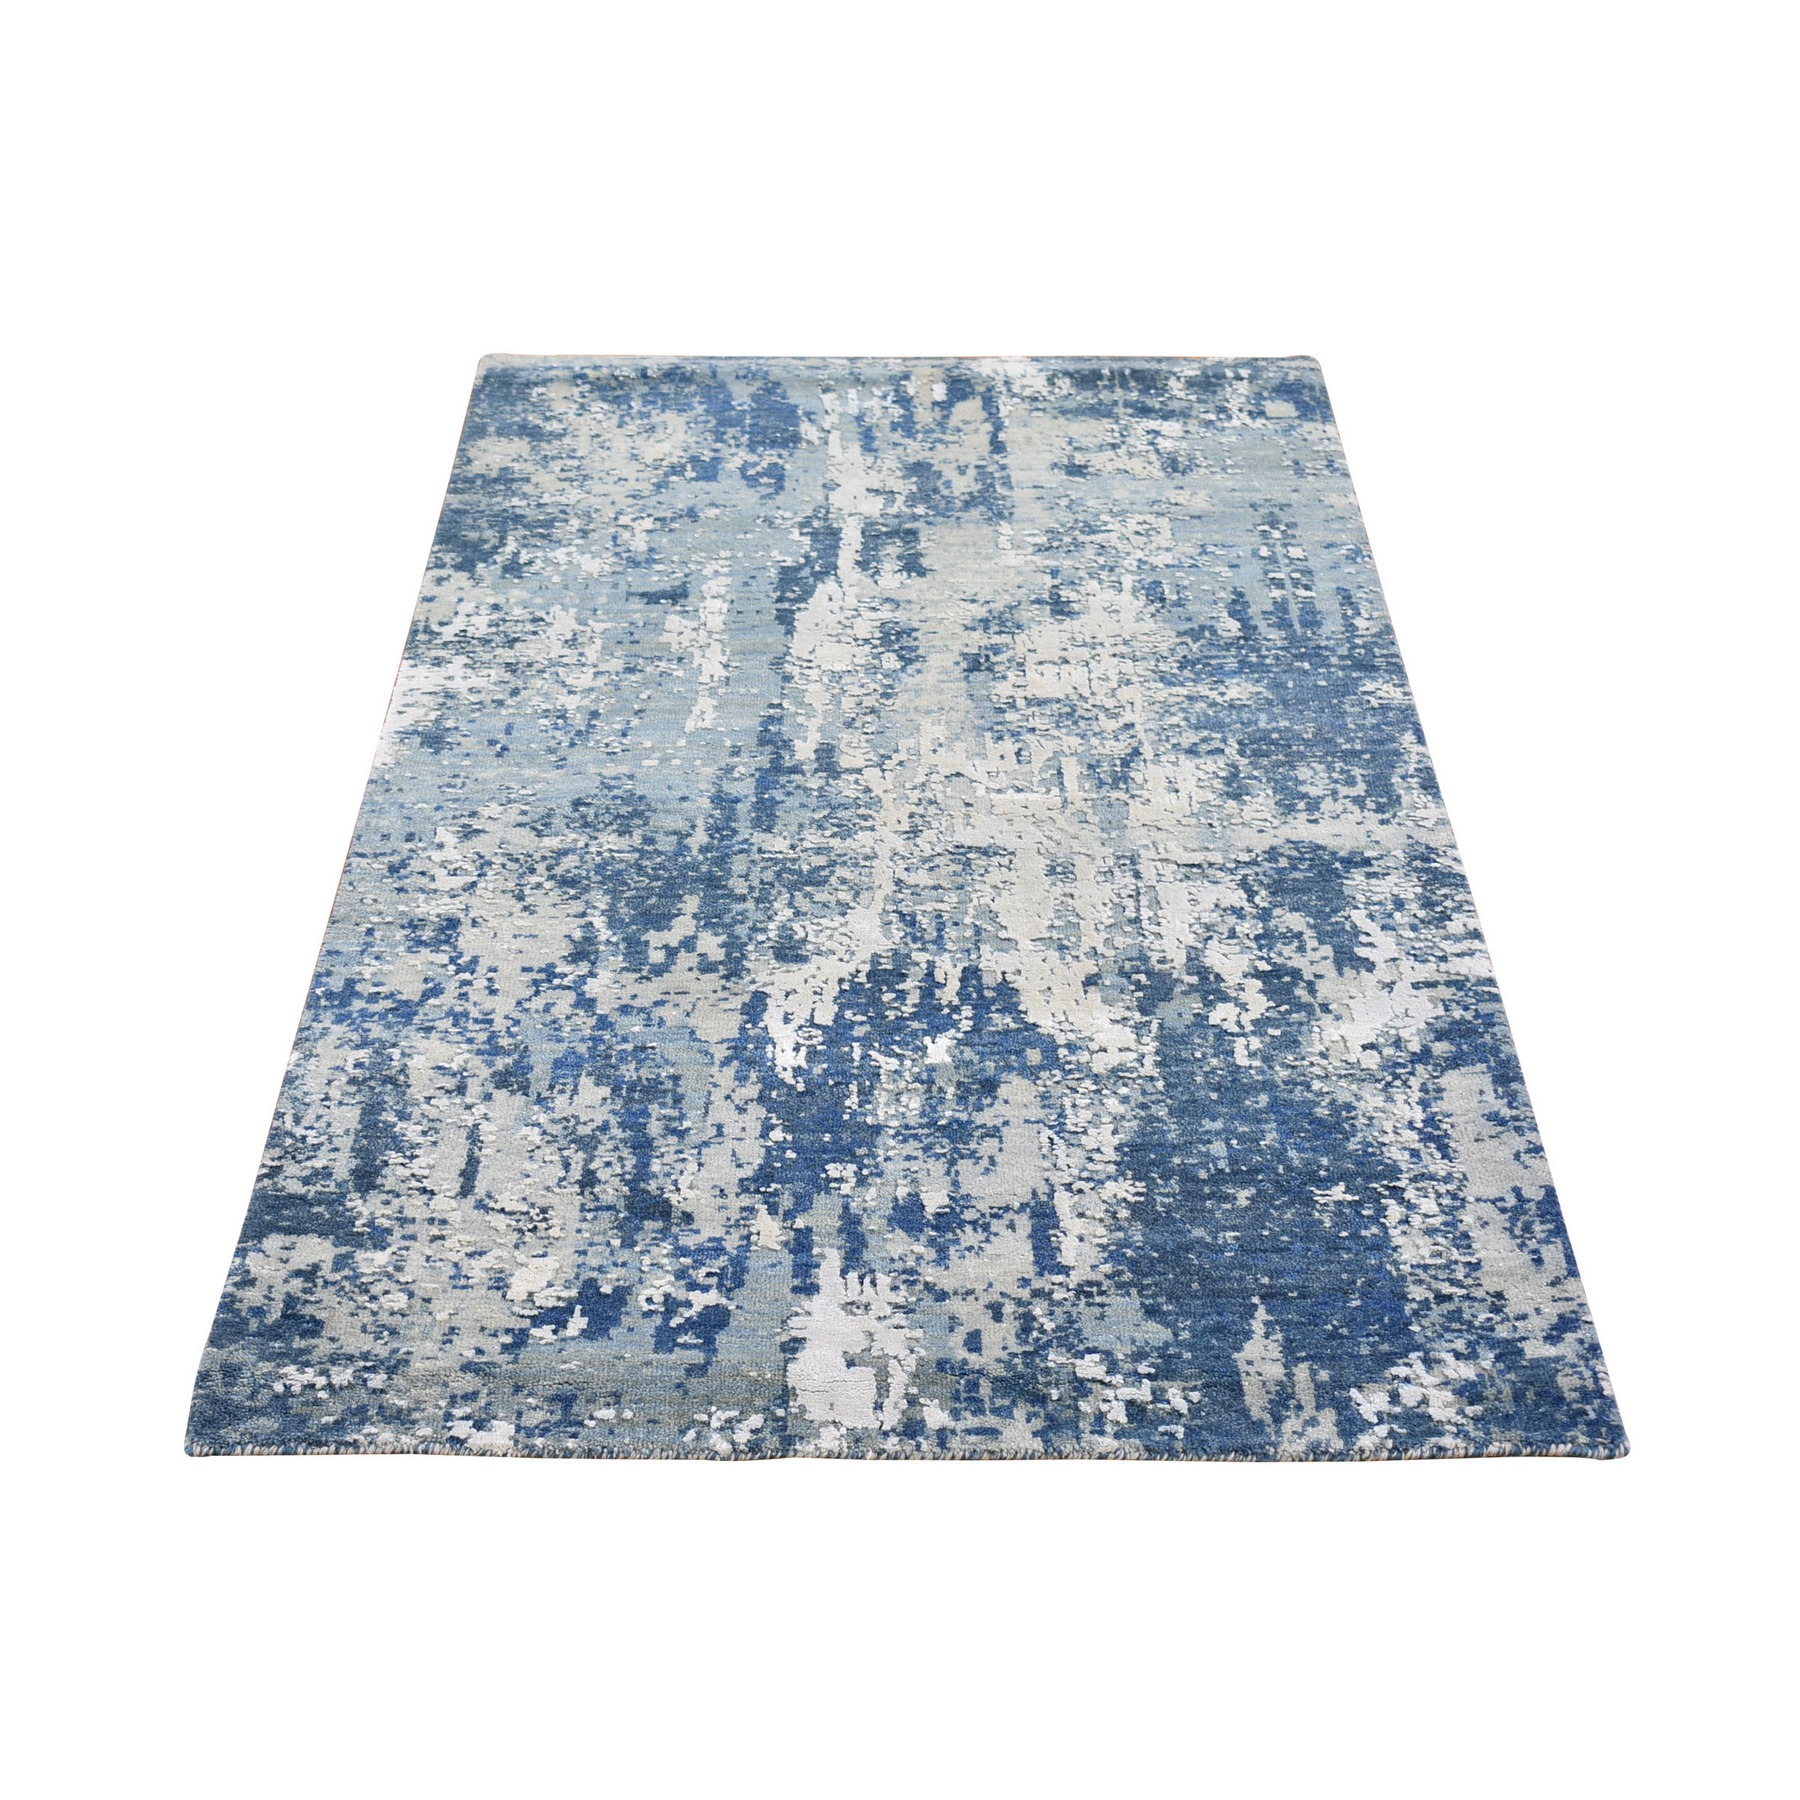 Mid Century Modern Collection Hand Knotted Blue Rug No: 1133526